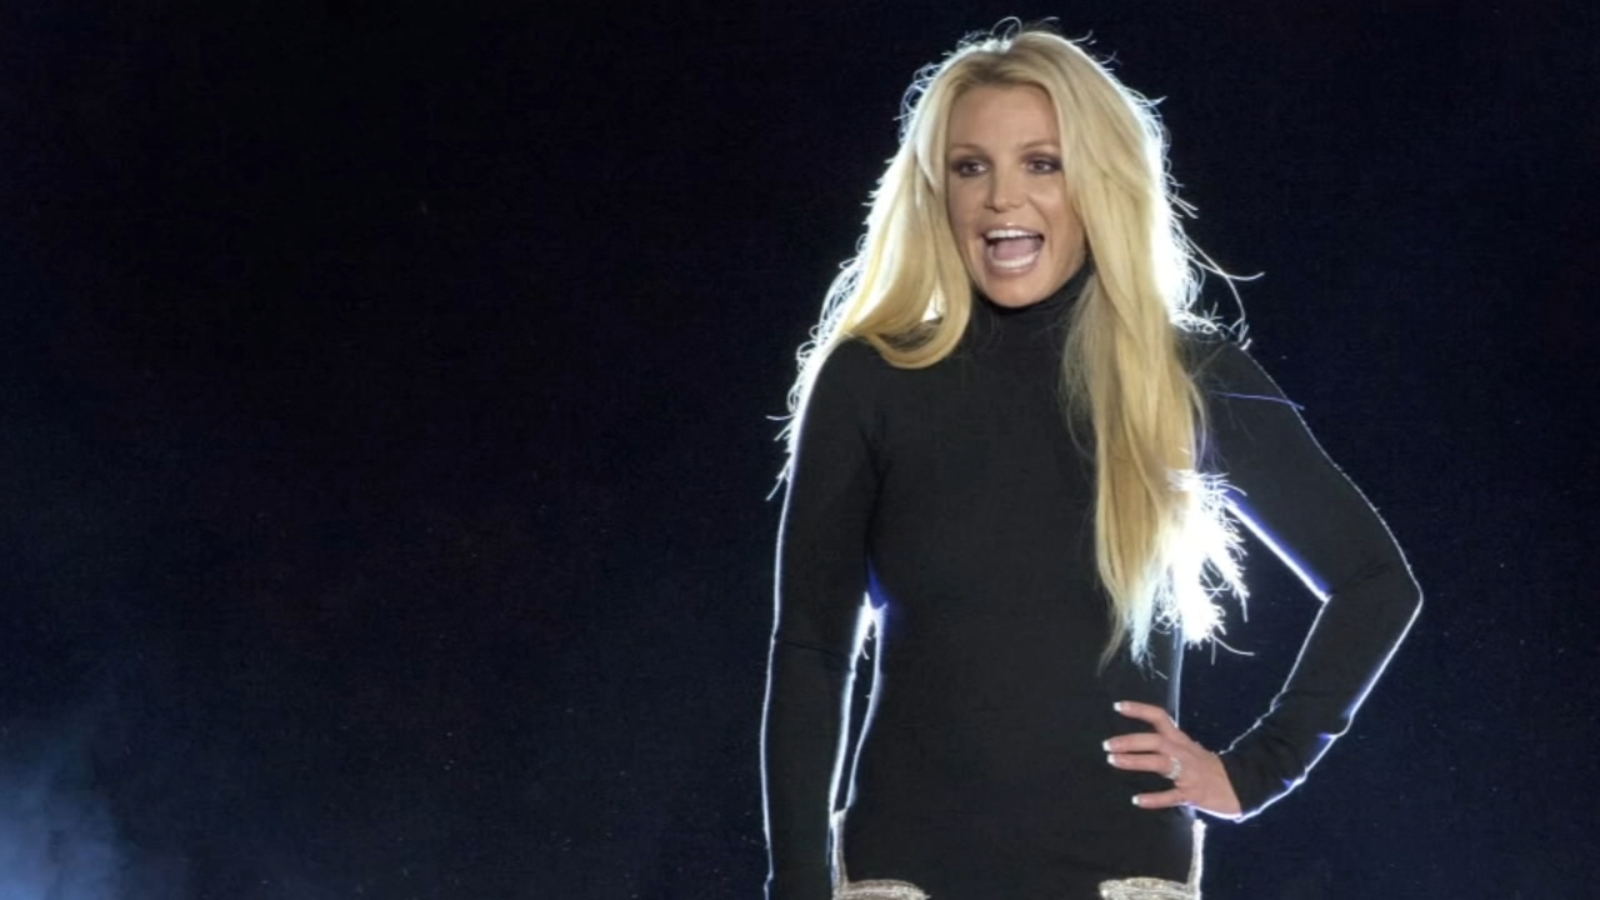 Britney Spears May Never Perform Again Cancelling Las Vegas Residency According To Manager Abc7 San Francisco